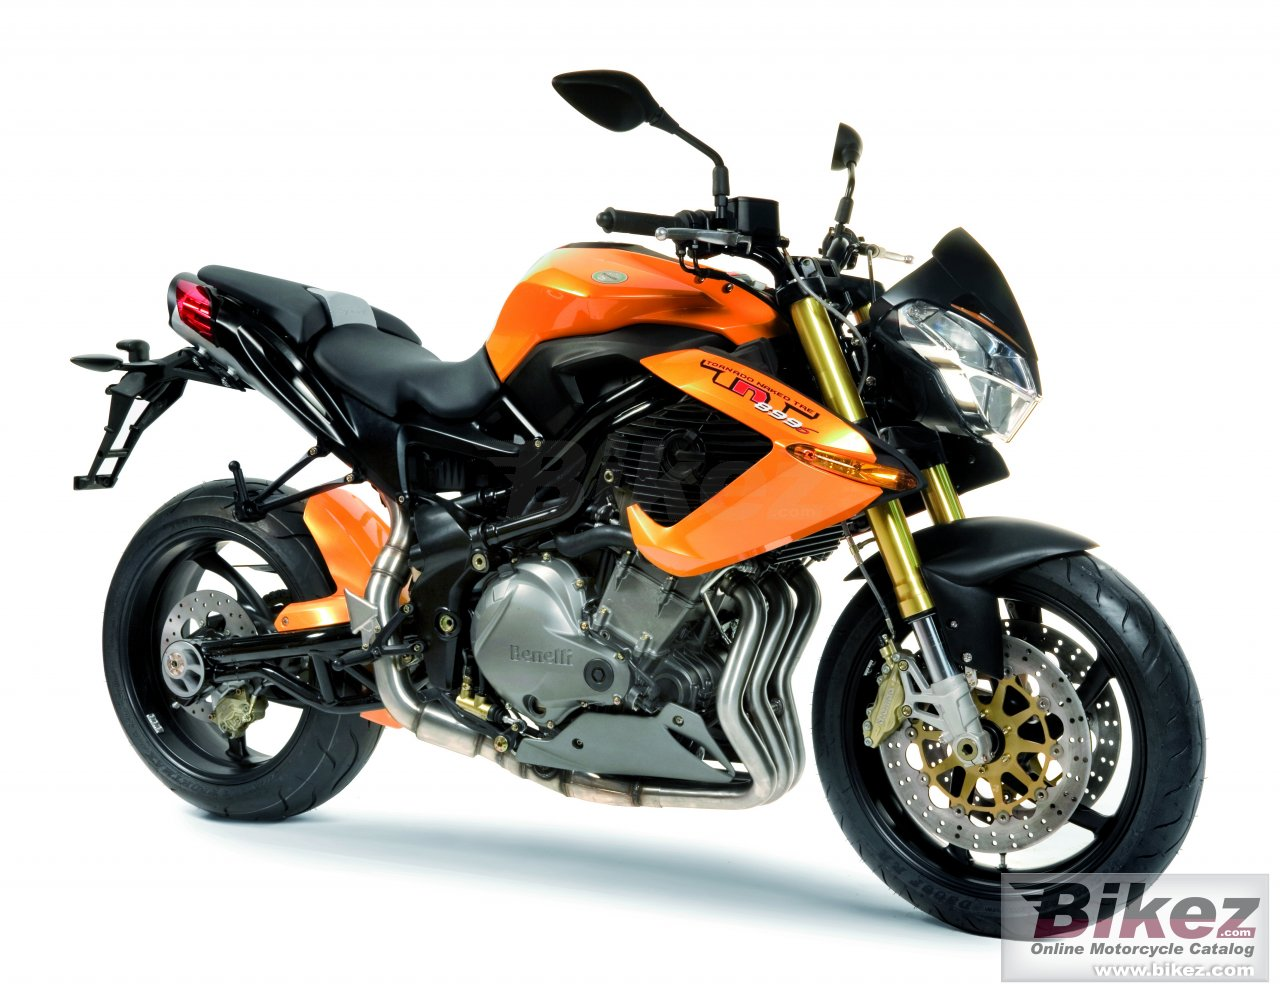 Big Benelli tornado naked tre 899 s picture and wallpaper from Bikez.com